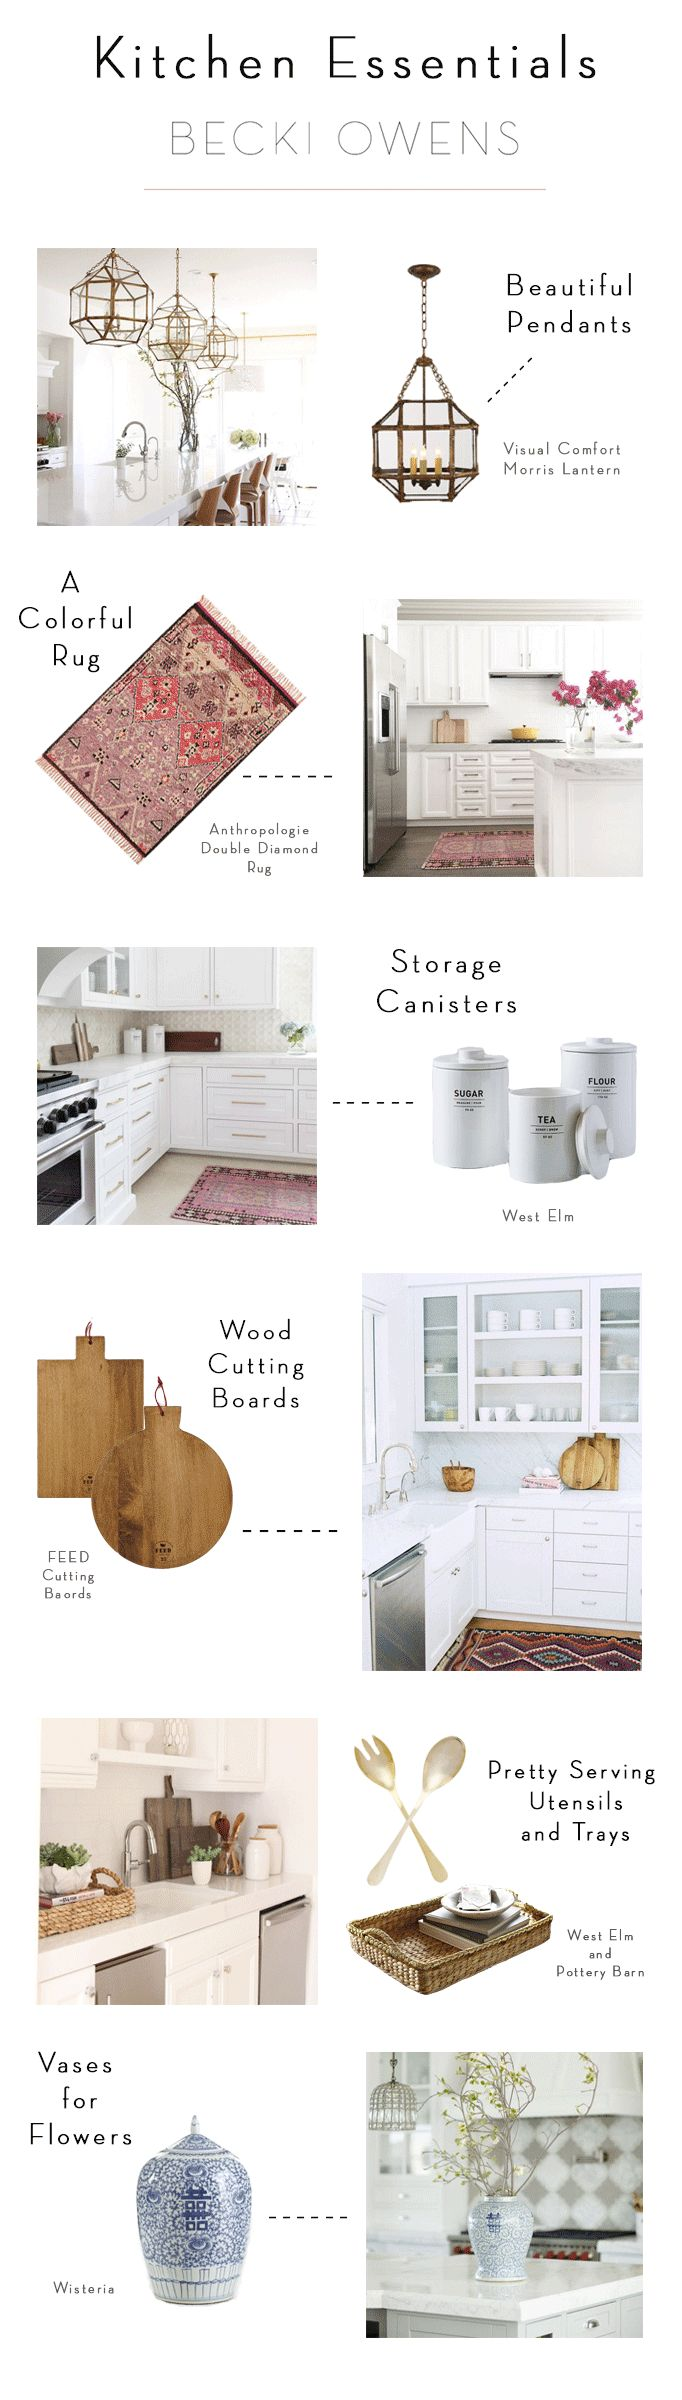 Kitchen Styling Essentials - Becki Owens